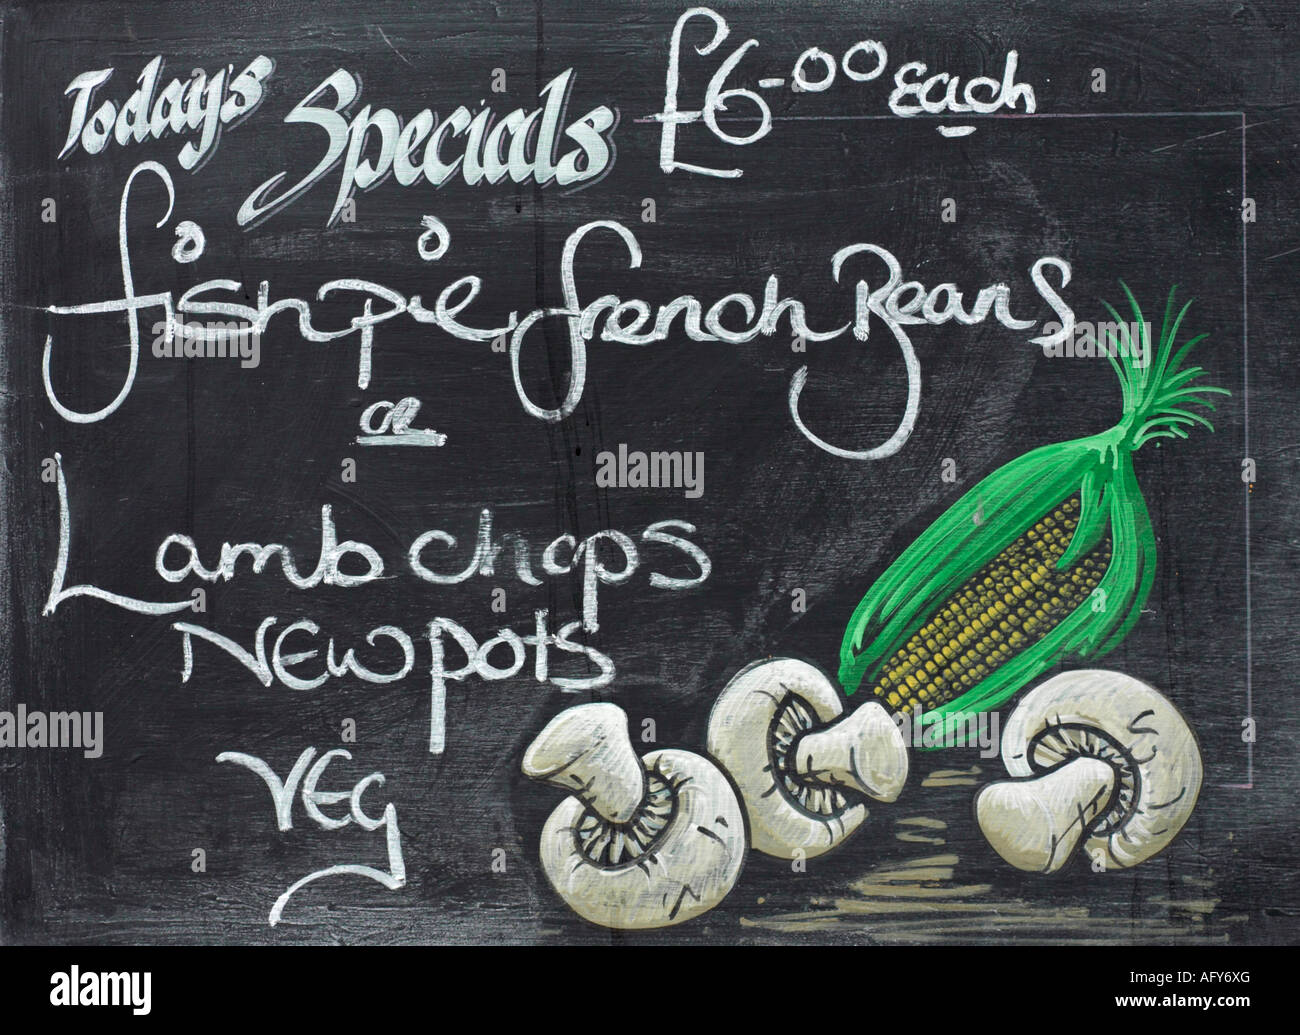 English Public House Chalkboard advertising food - Stock Image